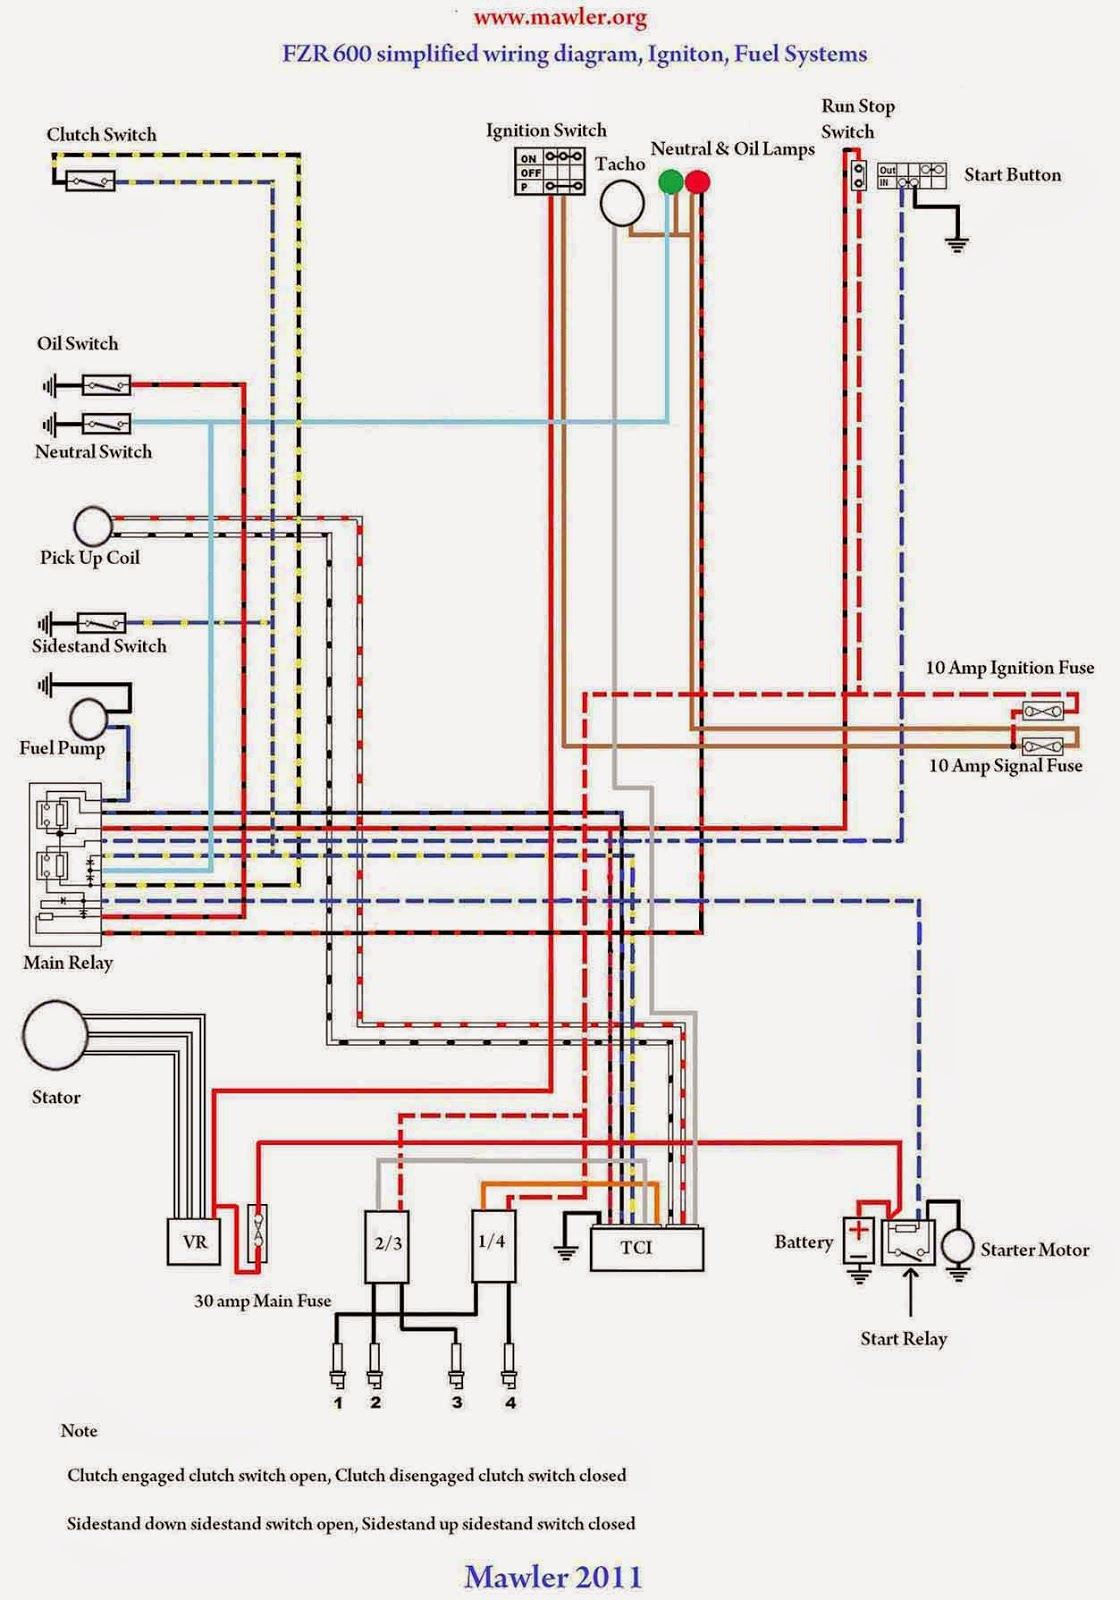 DIAGRAM] 2000 Caribou Camper Wiring Harness Diagram FULL Version HD Quality Harness  Diagram - MUSCLEDIAGRAM.VAGALUME.FRwiring diagrams - vagalume.fr